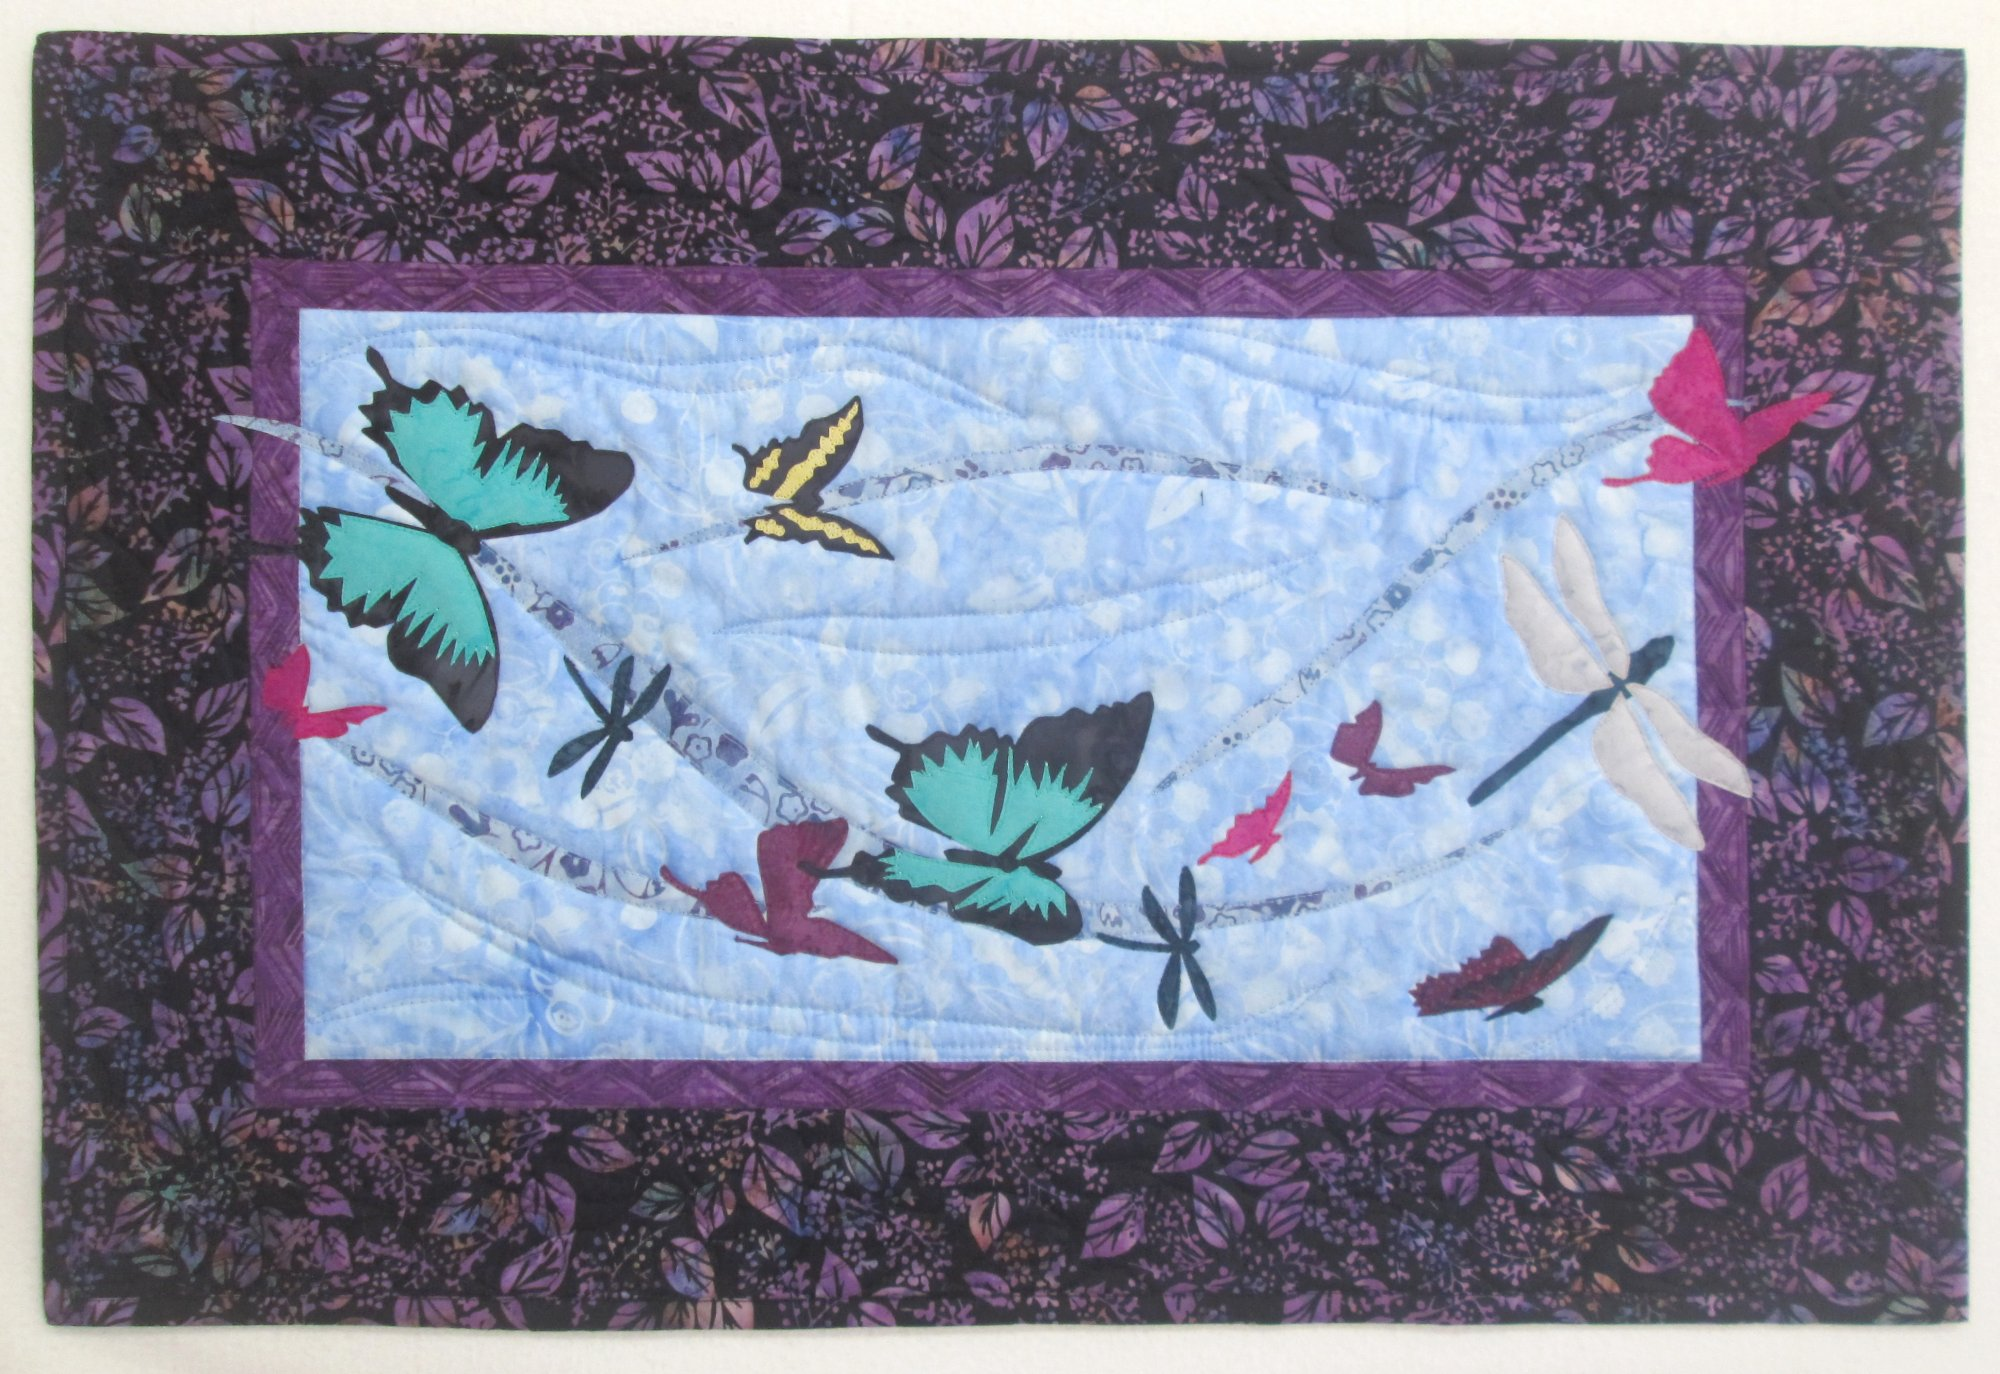 Into the Wild Flying By Wall Hanging Kit 19x29 Includes Binding